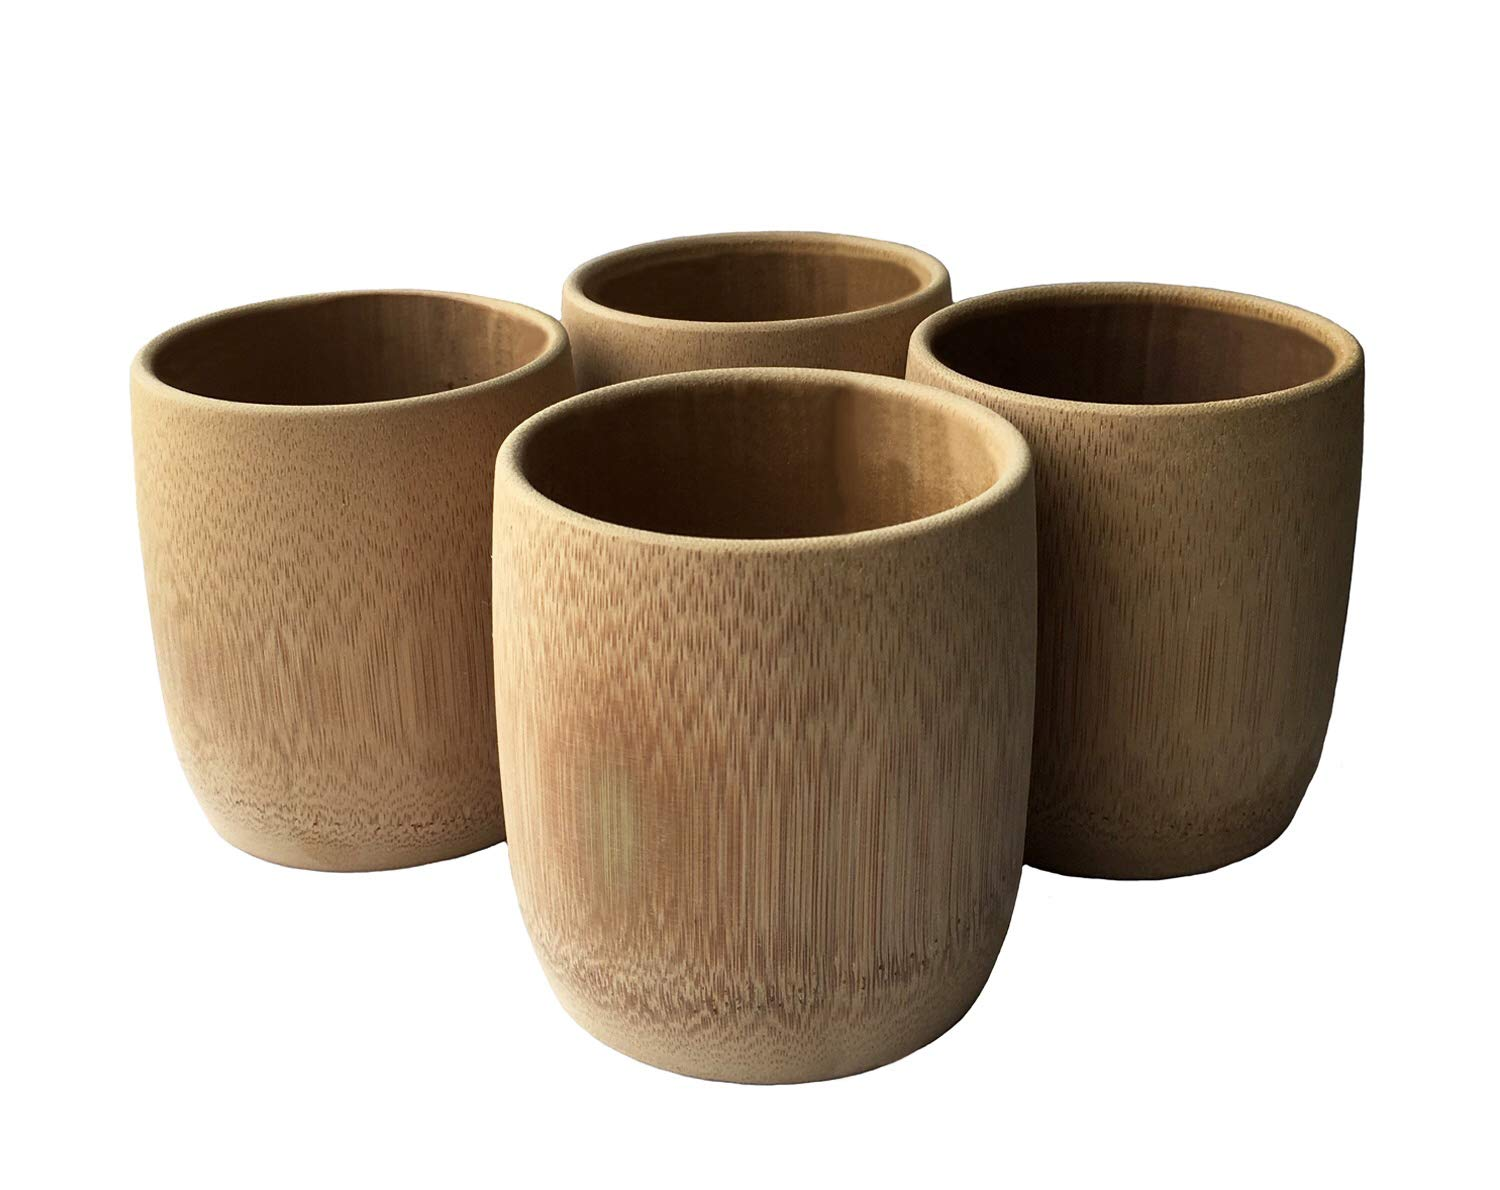 KCHAIN 4pcs Drinking Cups for Sake Coffee Tea (200mL Bamboo cups) by KCHAIN